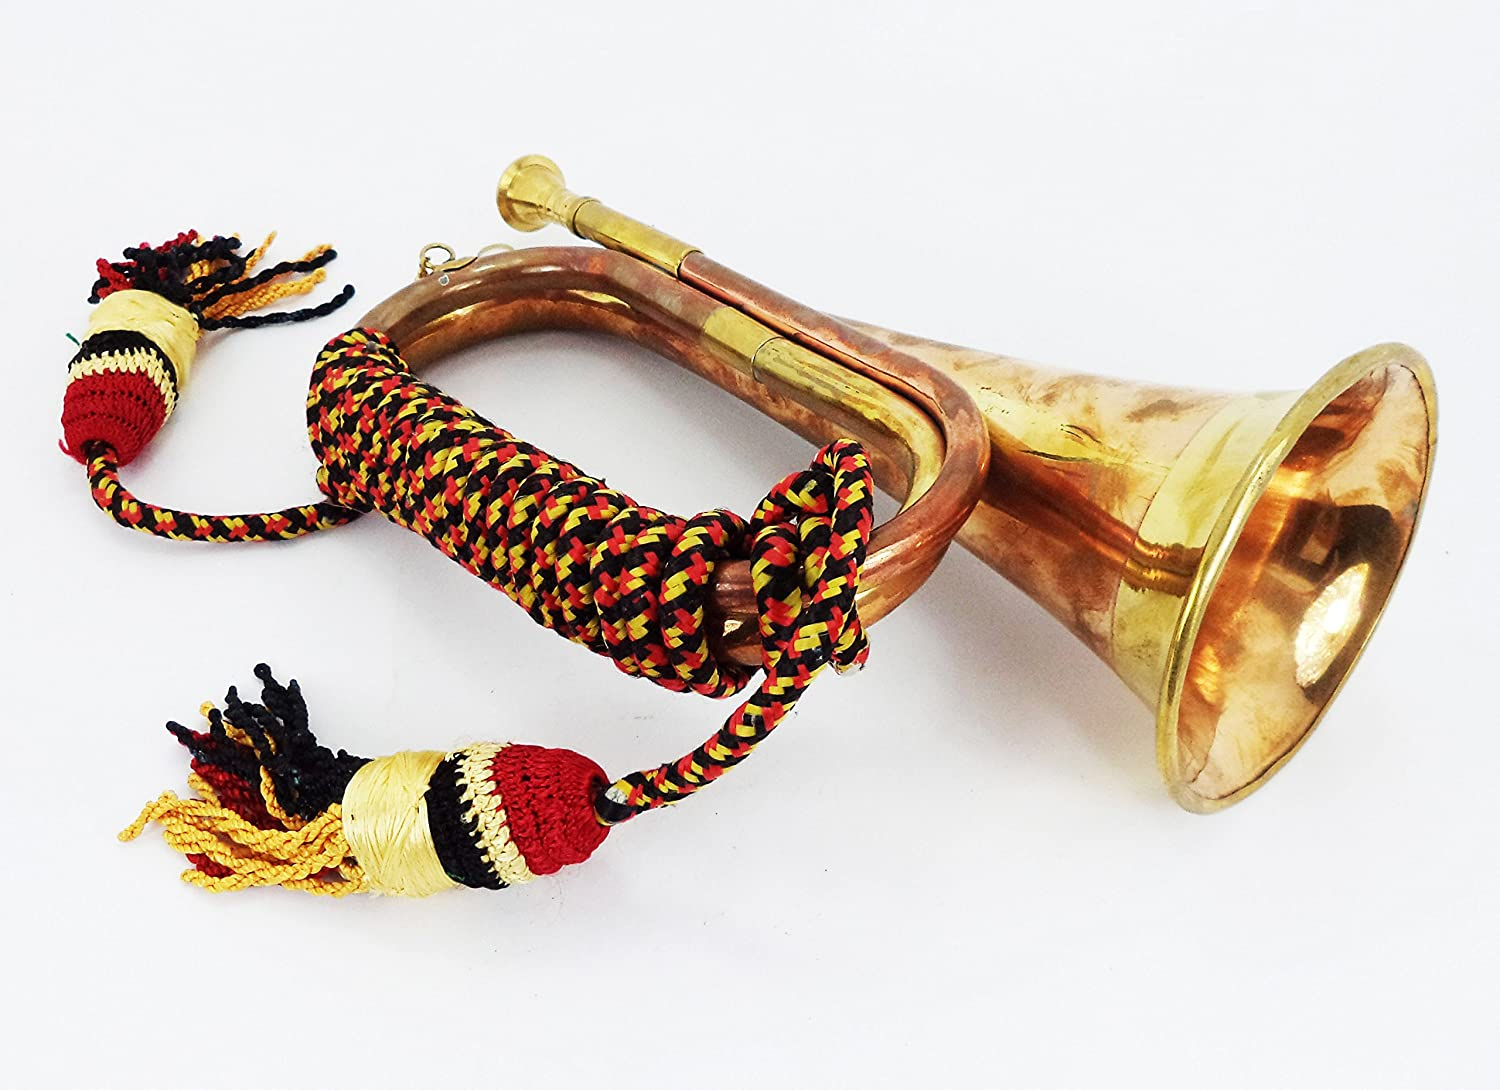 Boy Scout Brass and Copper Blowing Bugle Attack War Command Signal Horn 10.6 Inch with Beautiful Colourful Rope Binding Dorpmarket